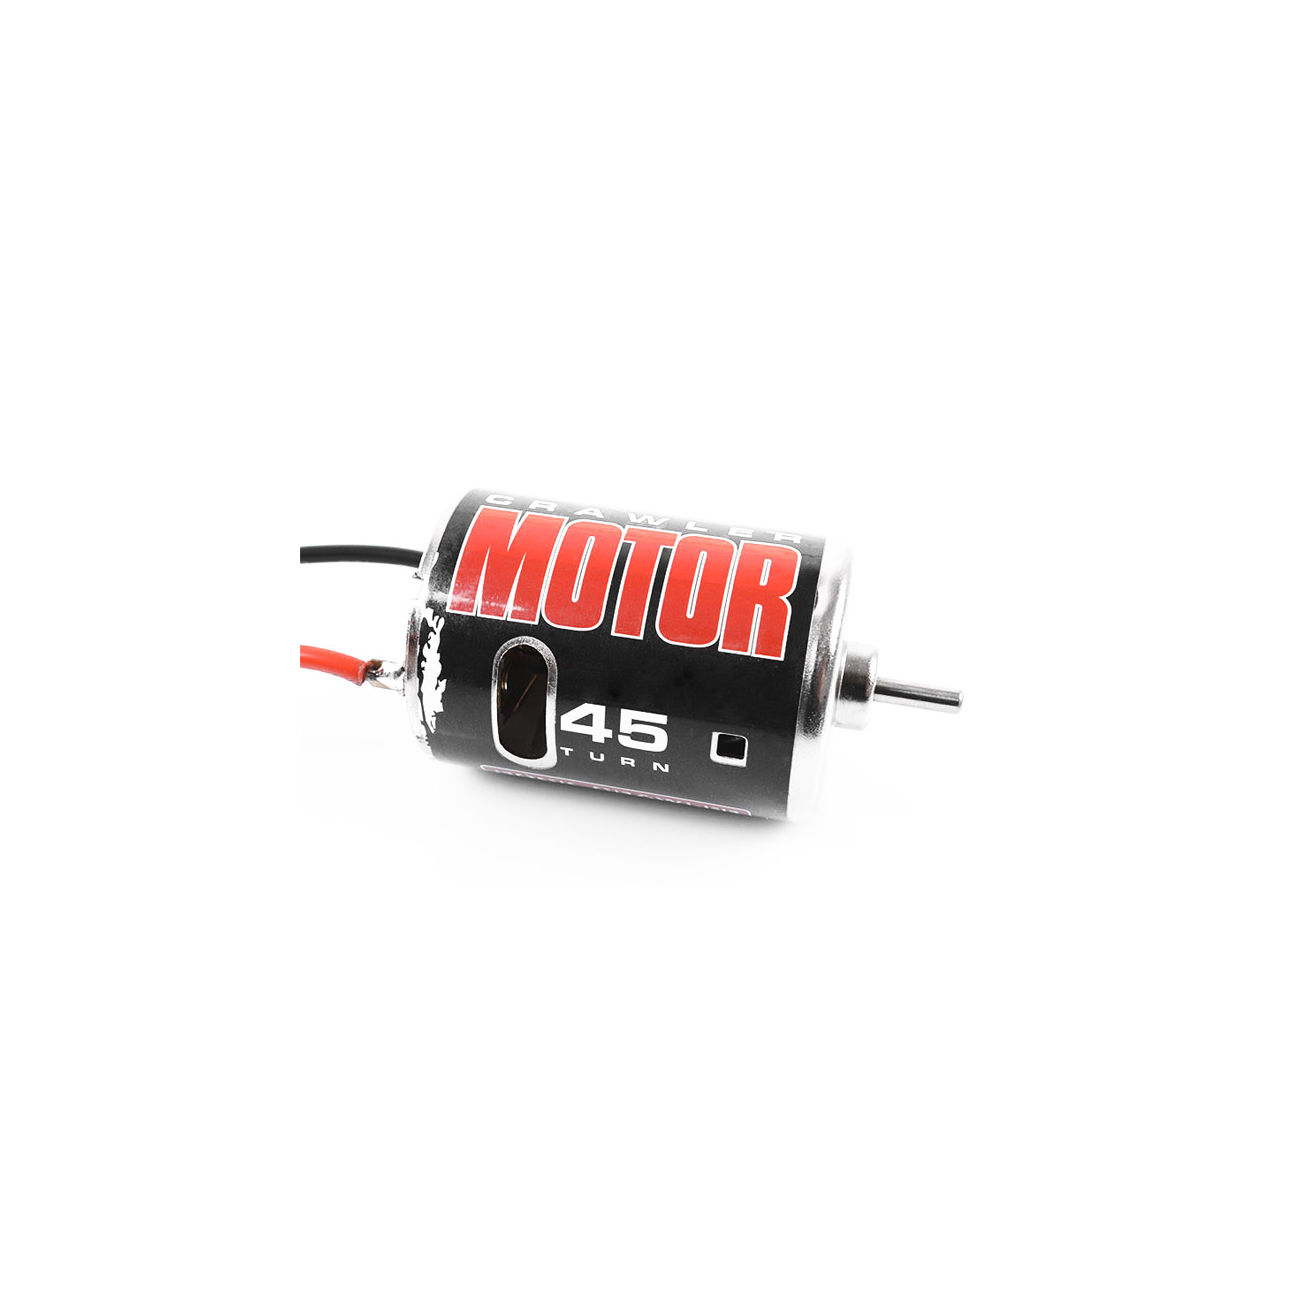 RC4WD Crawler Brushed 540er Motor 45 Turns Z-E0004 0